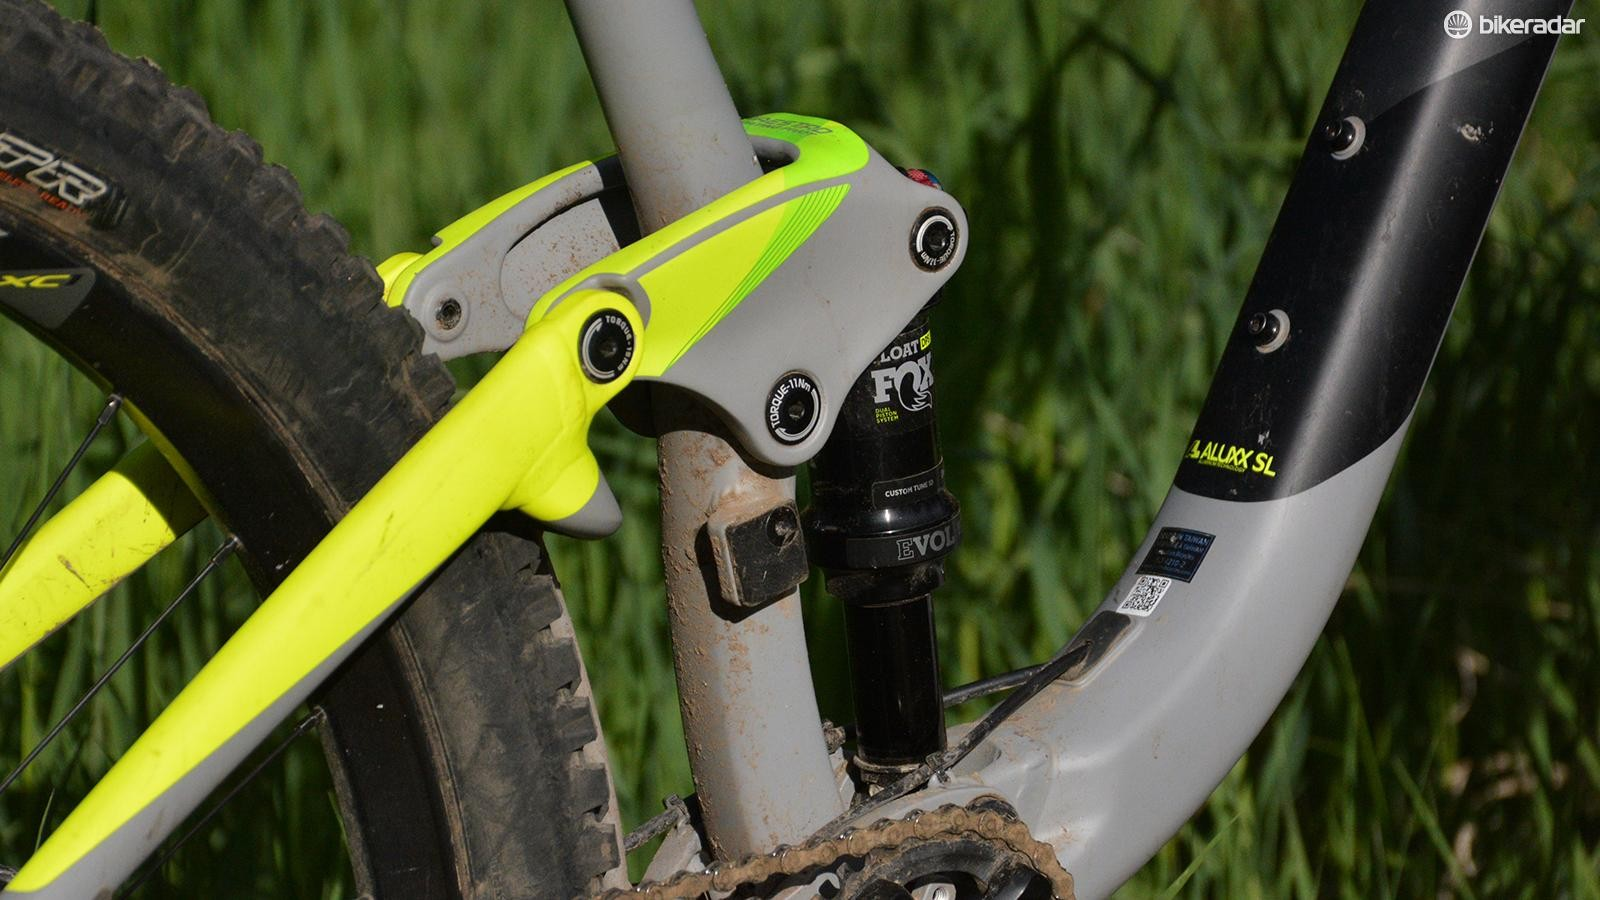 The Trance 2 can use a front derailleur, and a full-size water bottle fits in the main frame